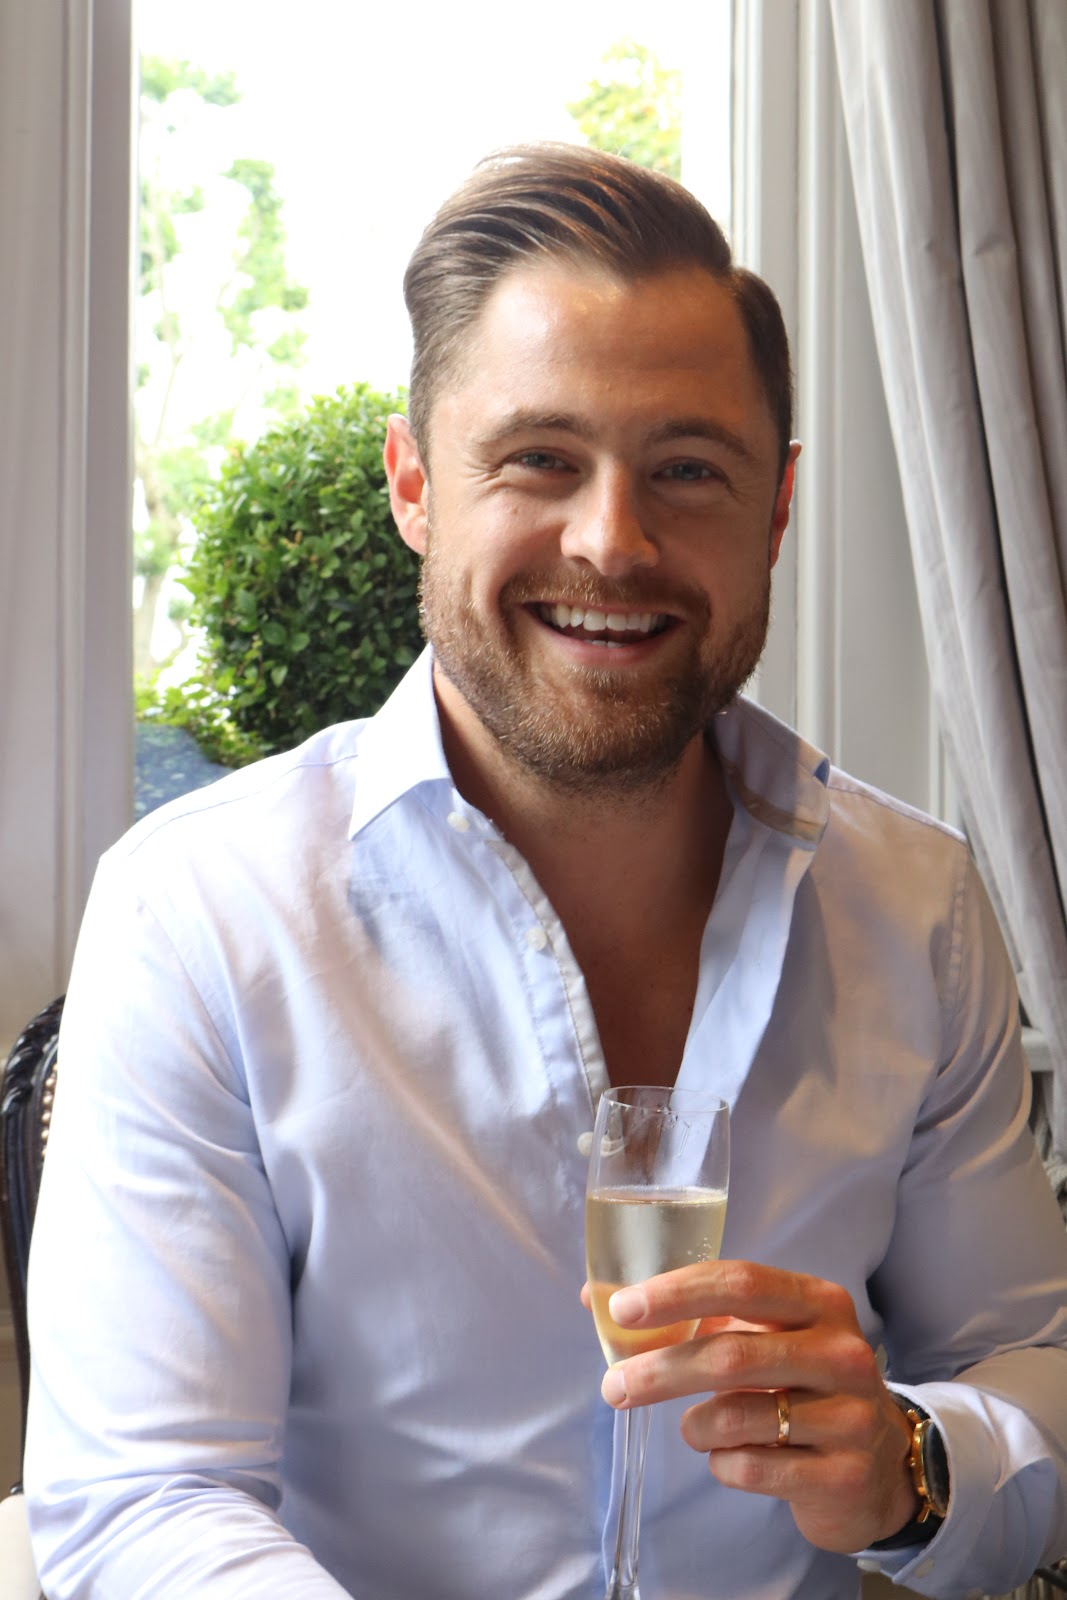 Ben Heath, Twenty First Century Gent, at Afternoon Tea, The Town House, The Kensington Hotel, Kensington, Chelsea, London